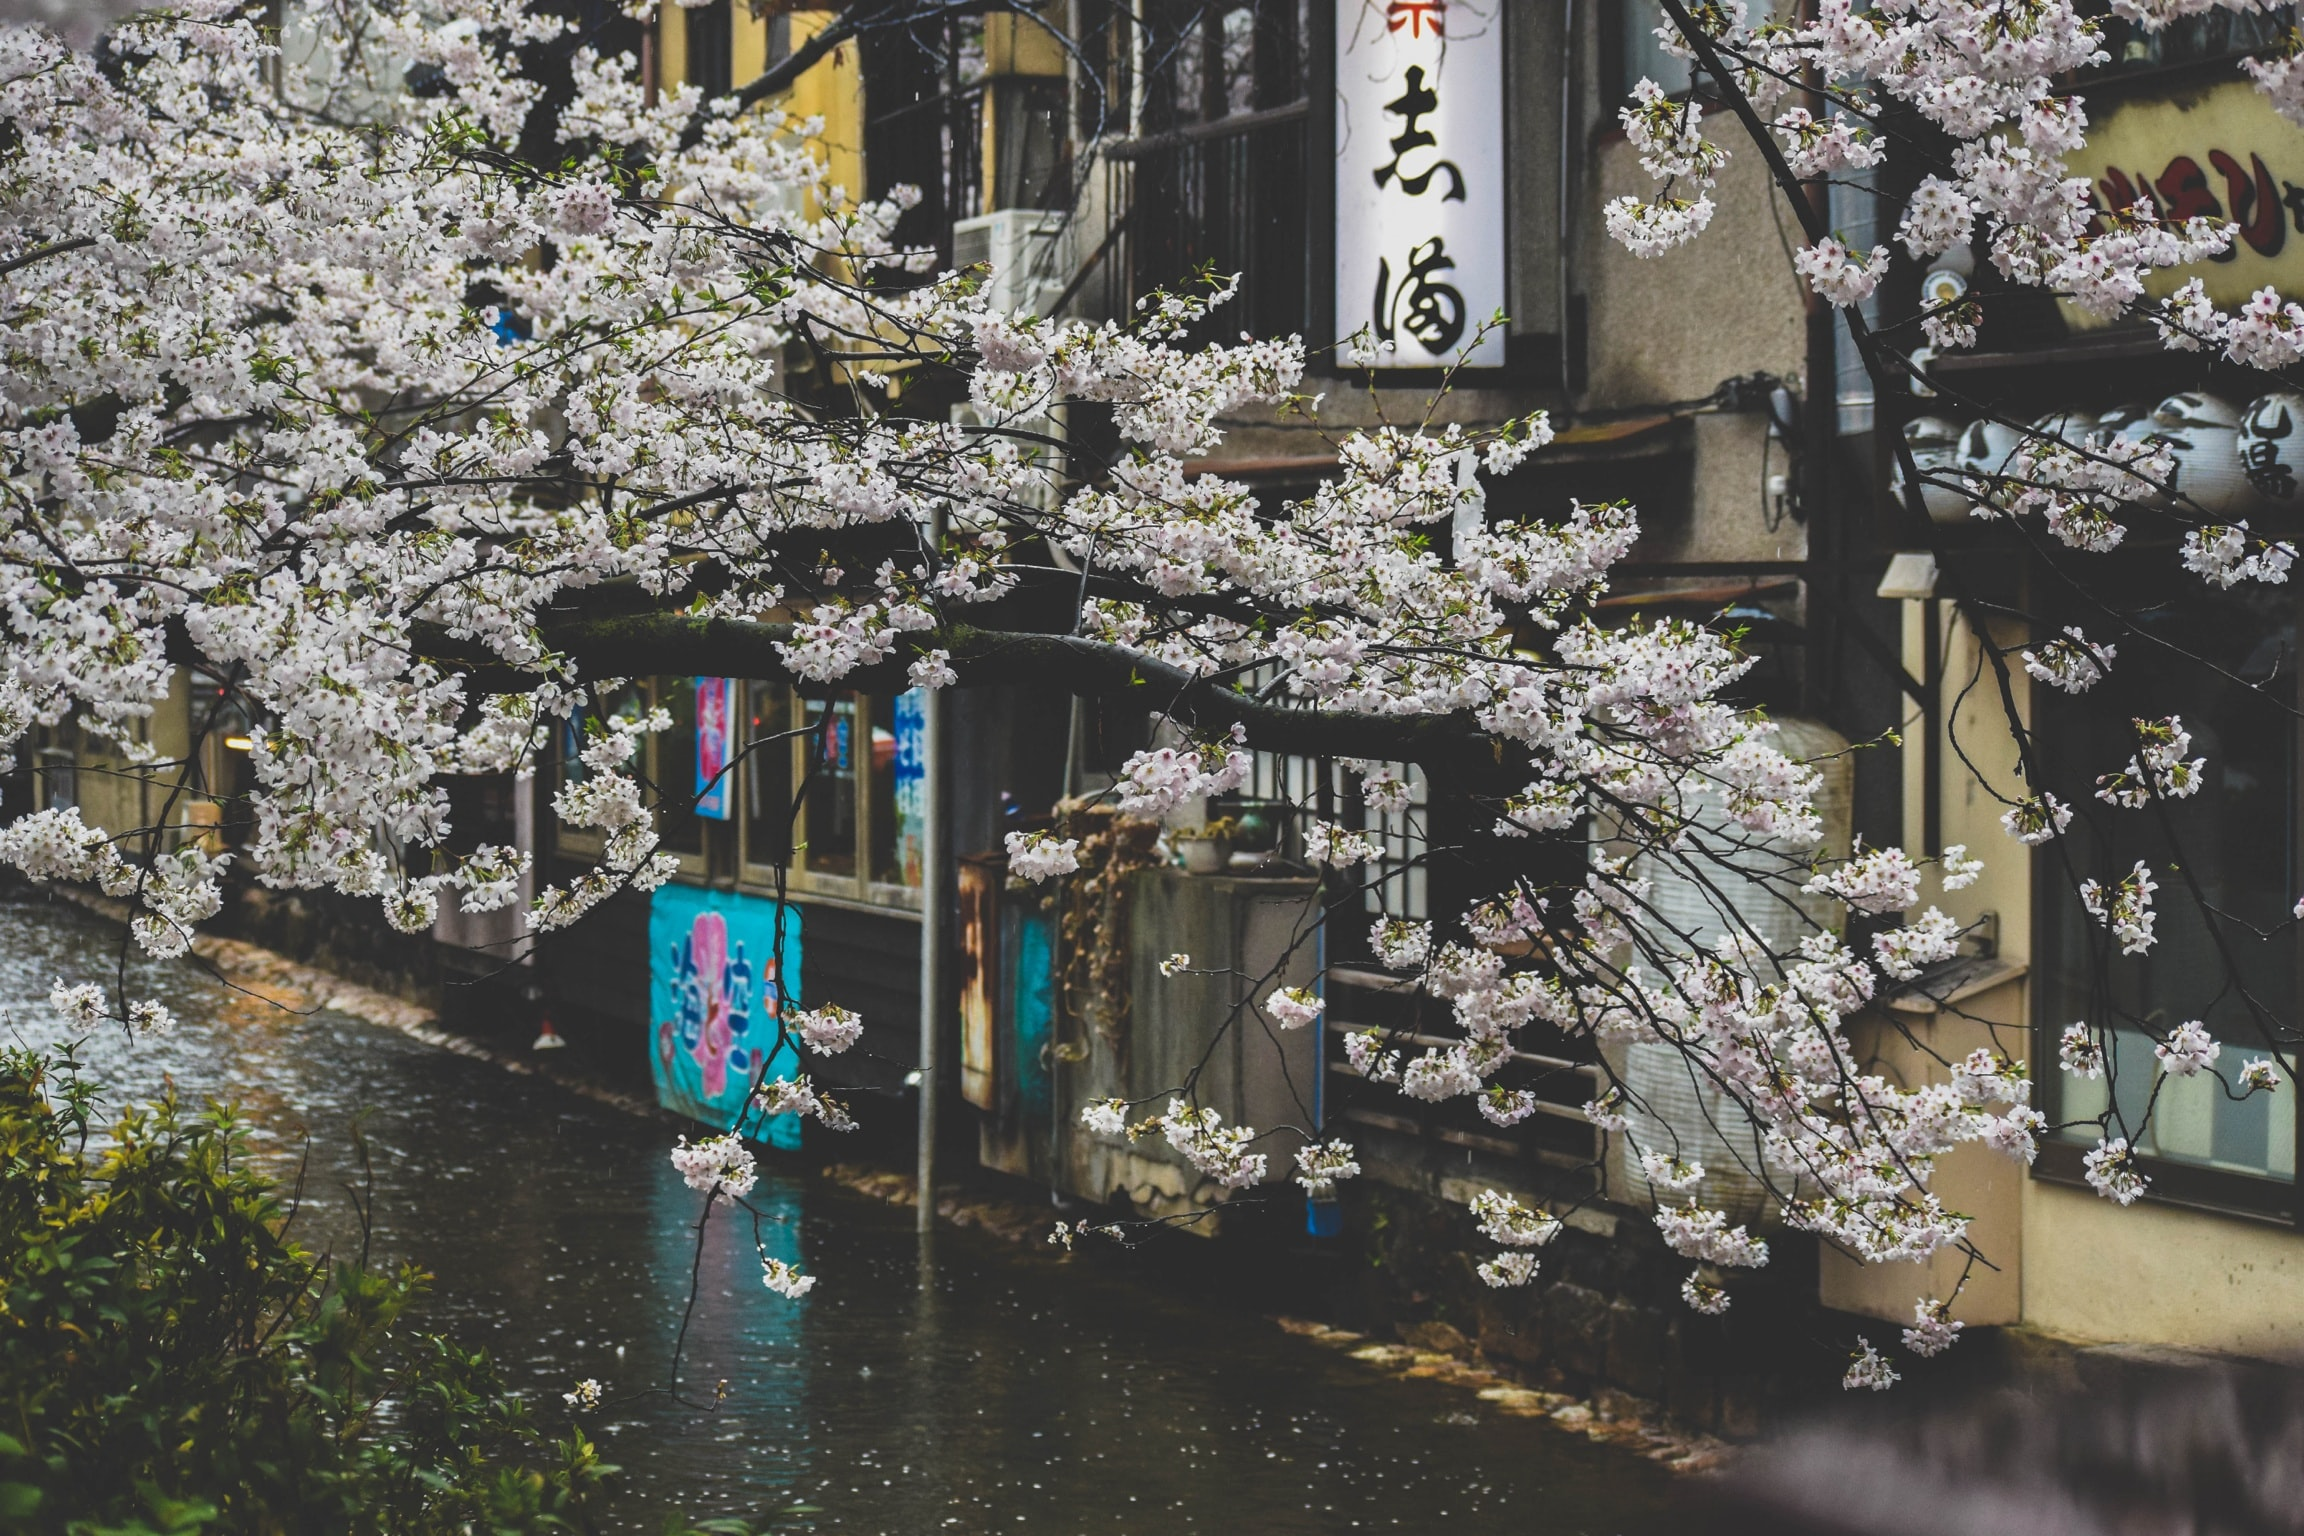 White blossom on tree branches over a wet Asian street